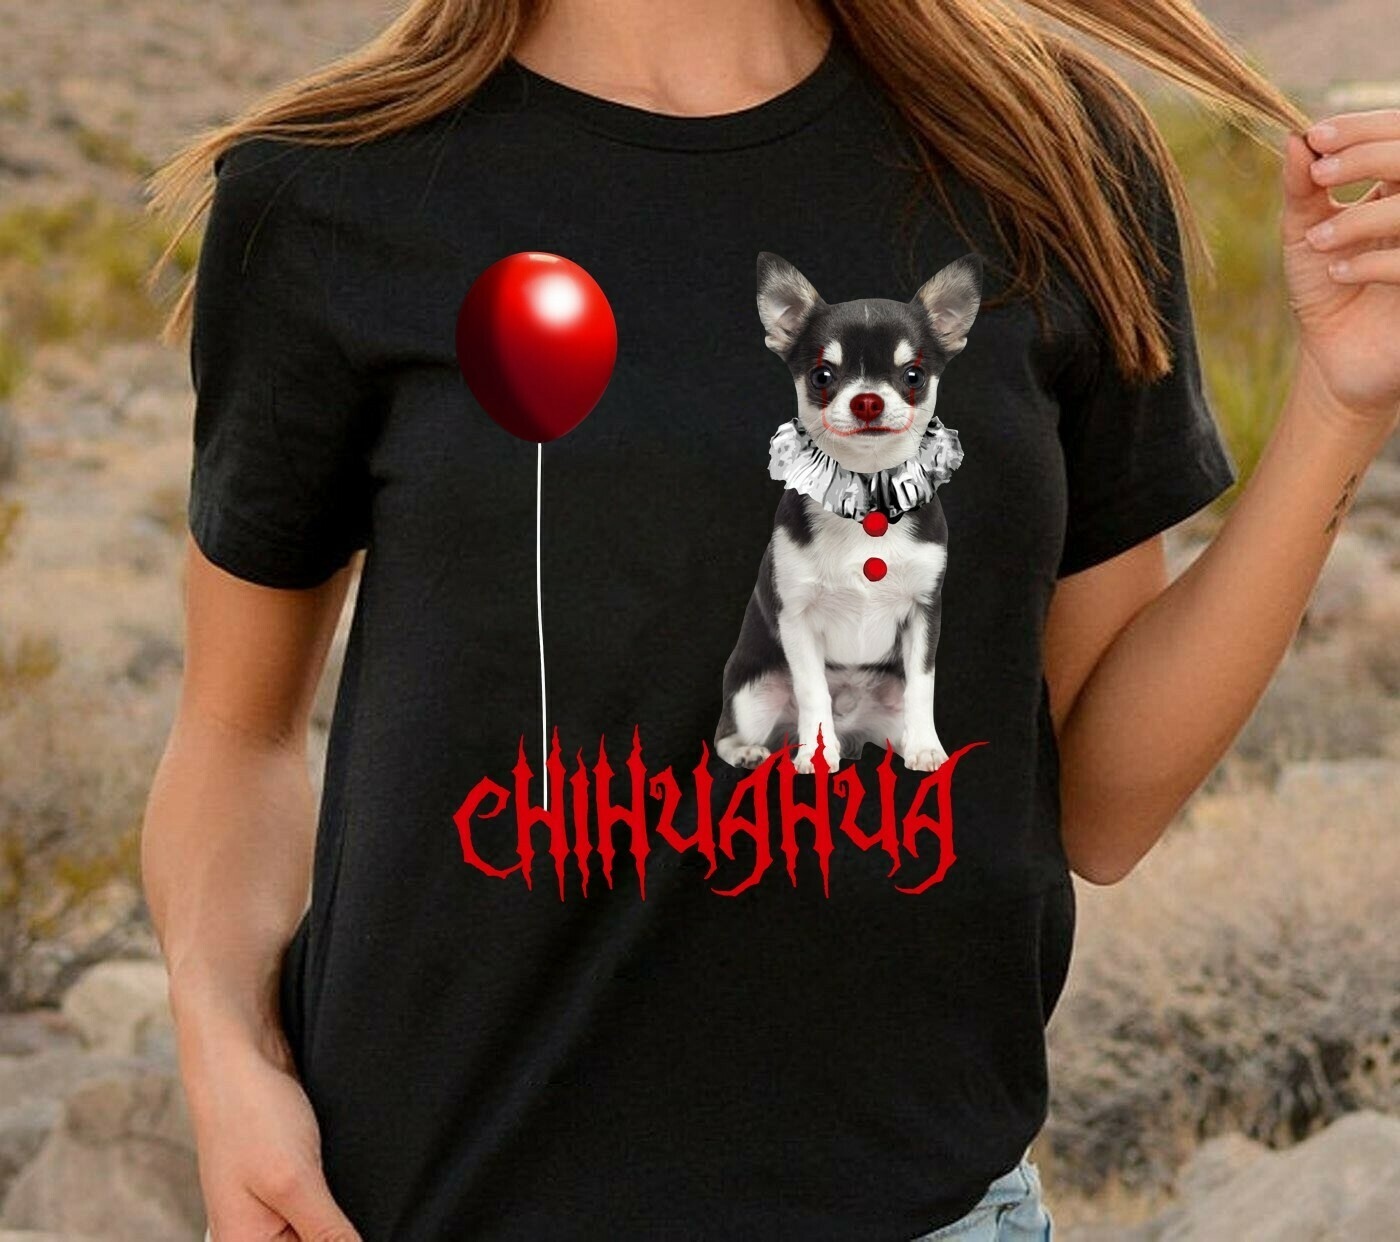 Chihuahua IT Pennywise We All Float Down Here Gift for Dogs Lovers Squad Villains Halloween Horror Movie Mashup Unisex T-Shirt Long Sleeve Sweatshirt Hoodie Jolly Family Gifts